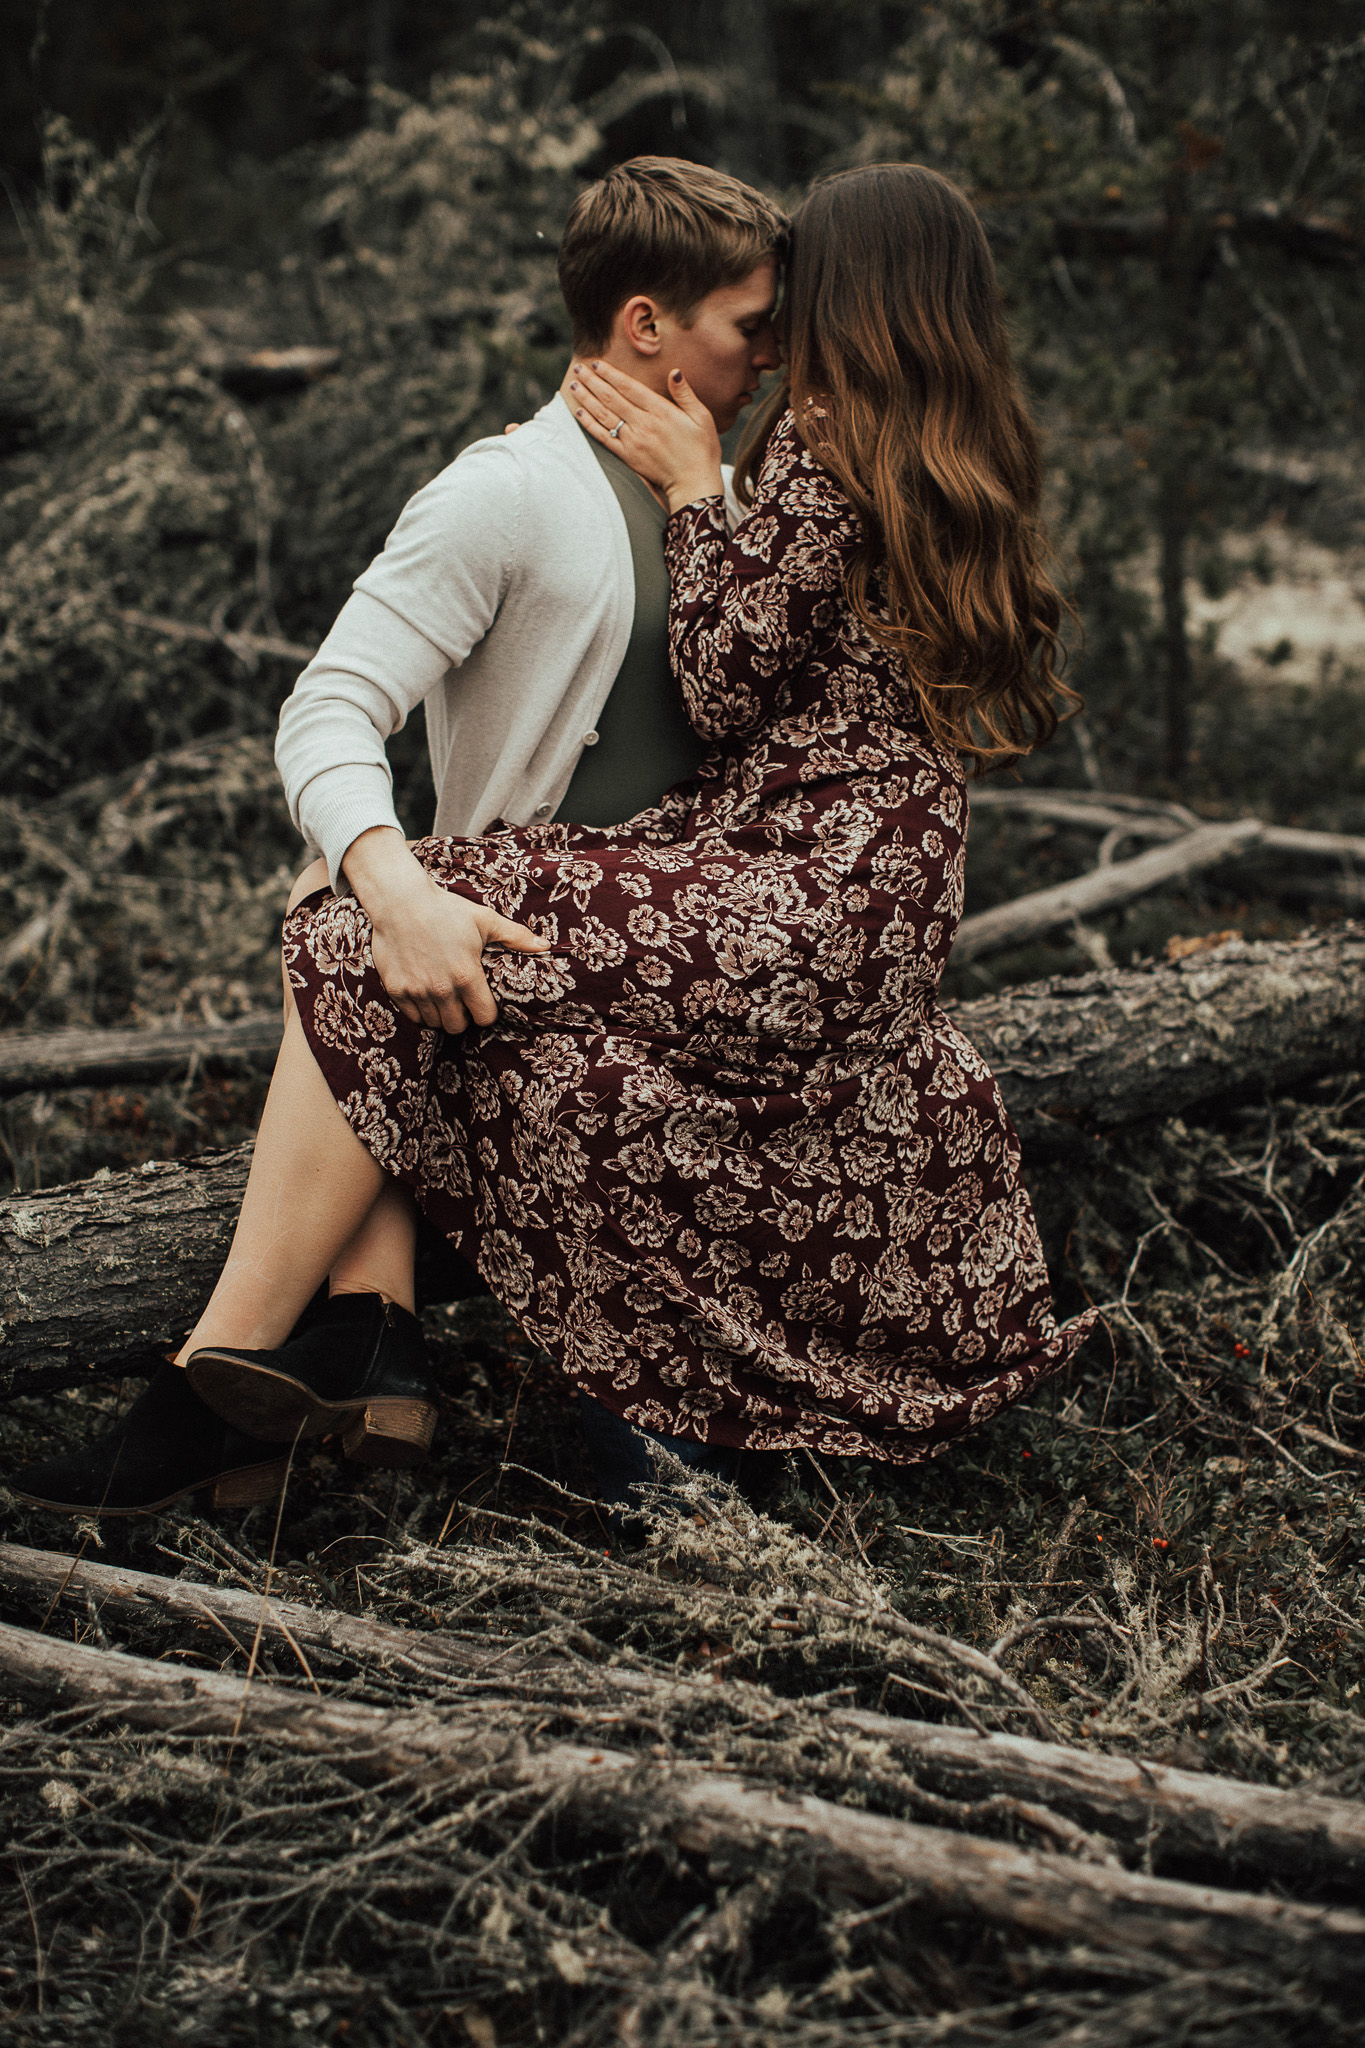 Edmonton Engagement Photographer - Michelle Larmand Photography - Mossy woods engagement session051